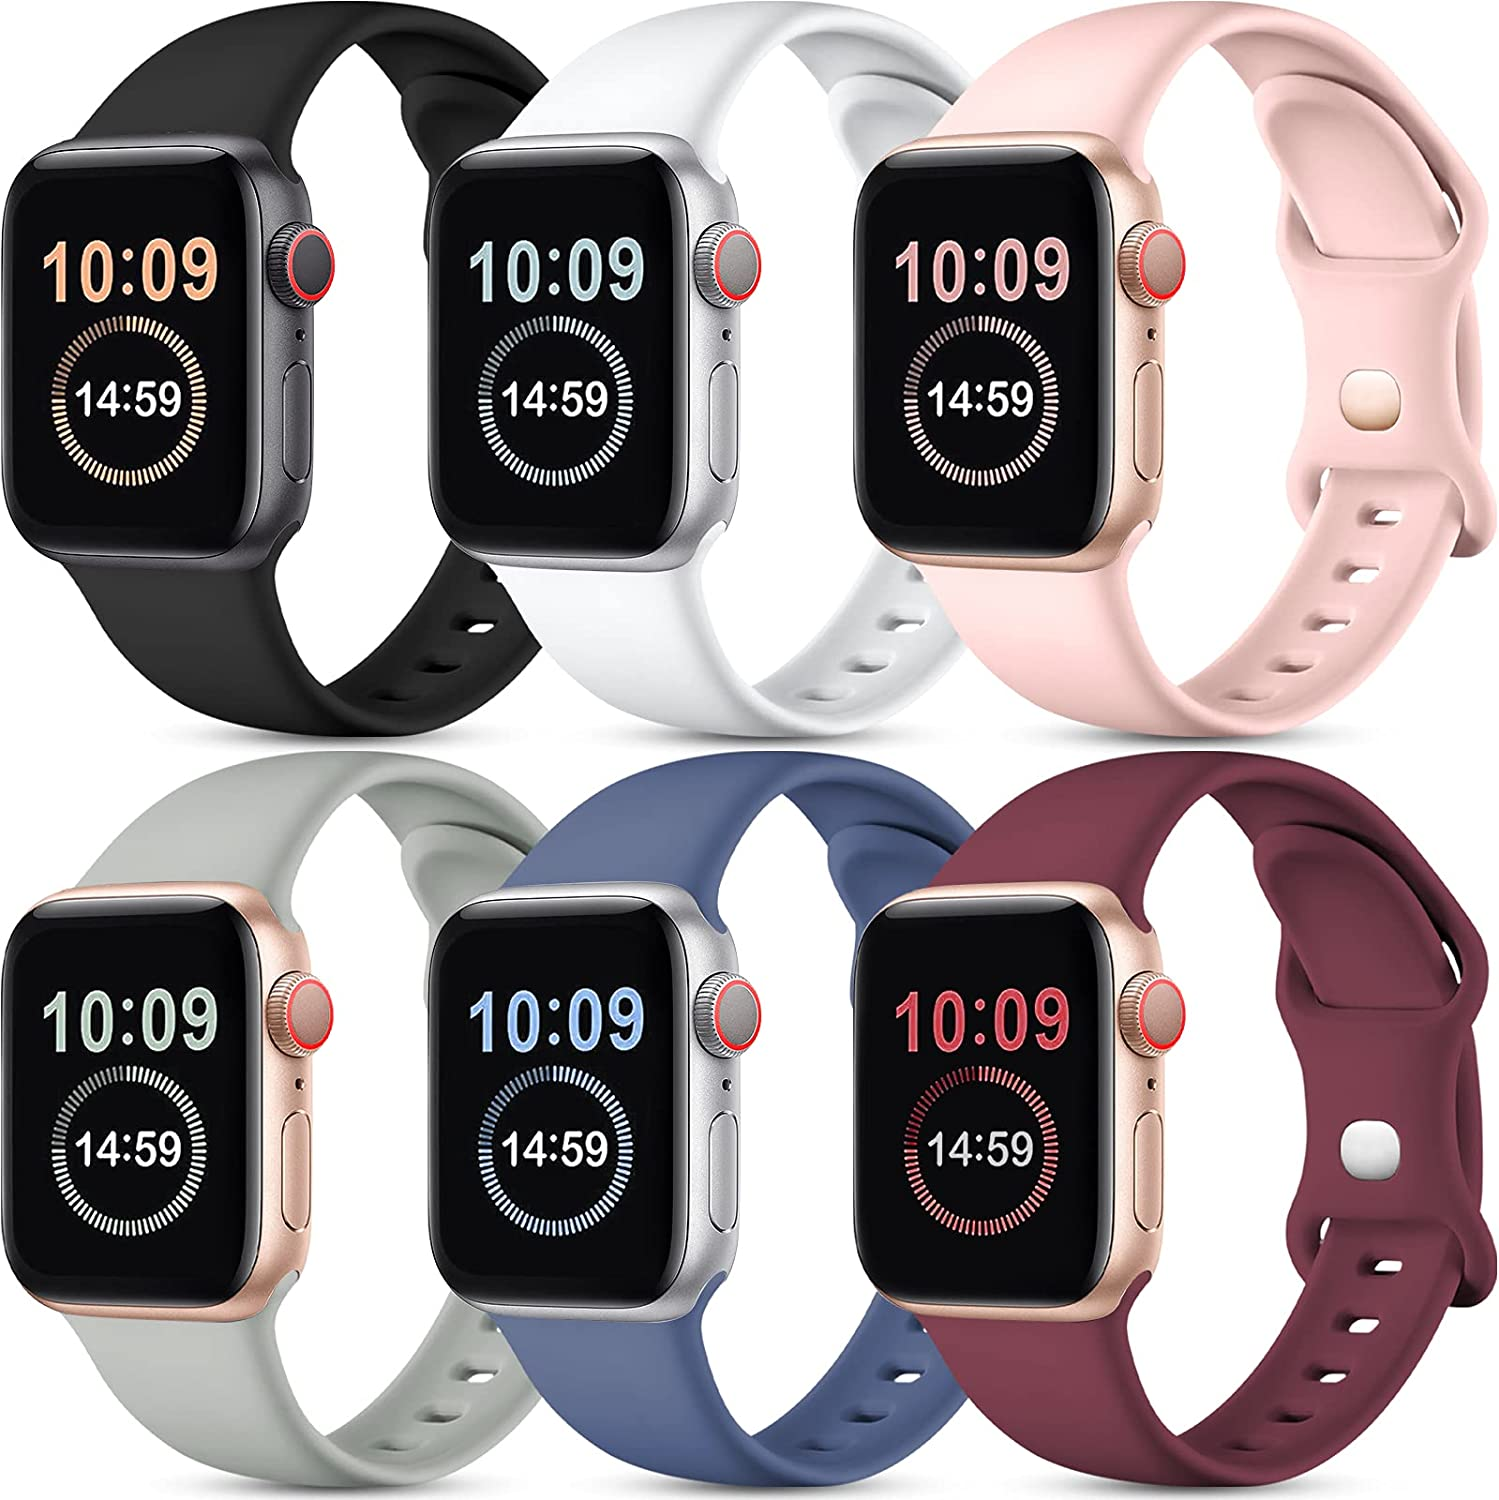 [6 Pack] SNBLK Compatible with Apple Watch Bands 44mm 42mm 40mm 38mm, Soft Silicone Sport Wristbands Replacement Strap Compatible for iWatch Series 6 5 4 3 2 1 SE